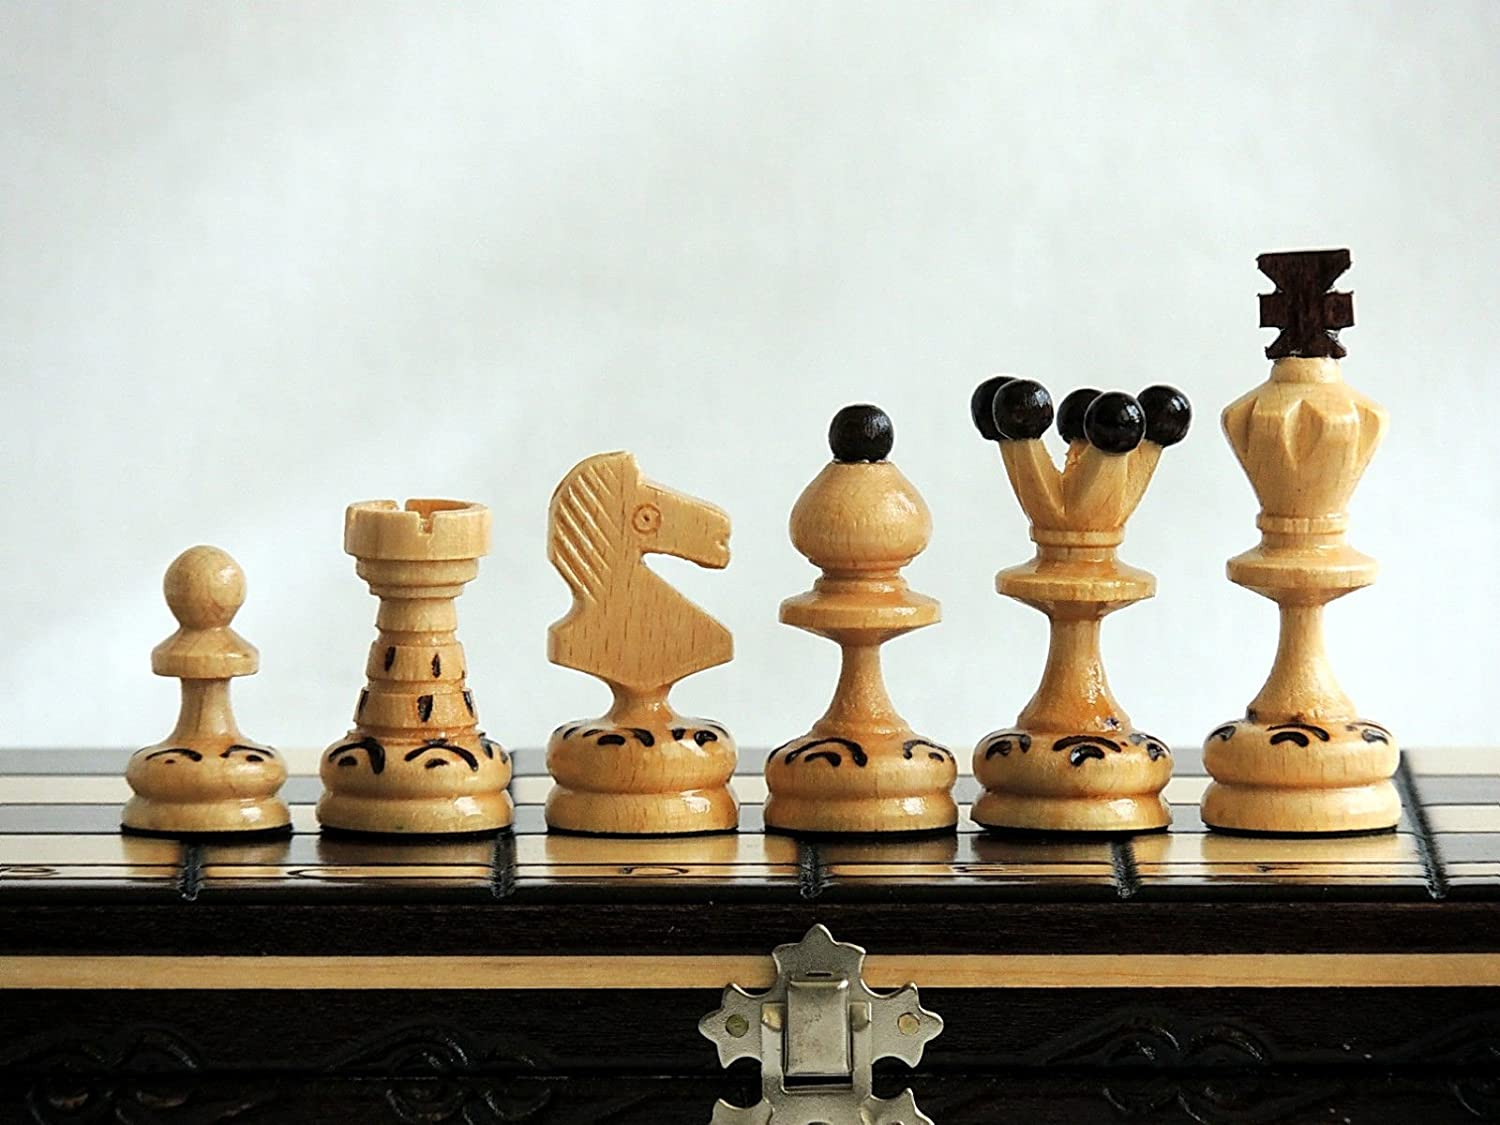 13.8in Popular European Wooden Chess Set Stunning PEARL 35cm Hand Crafted and